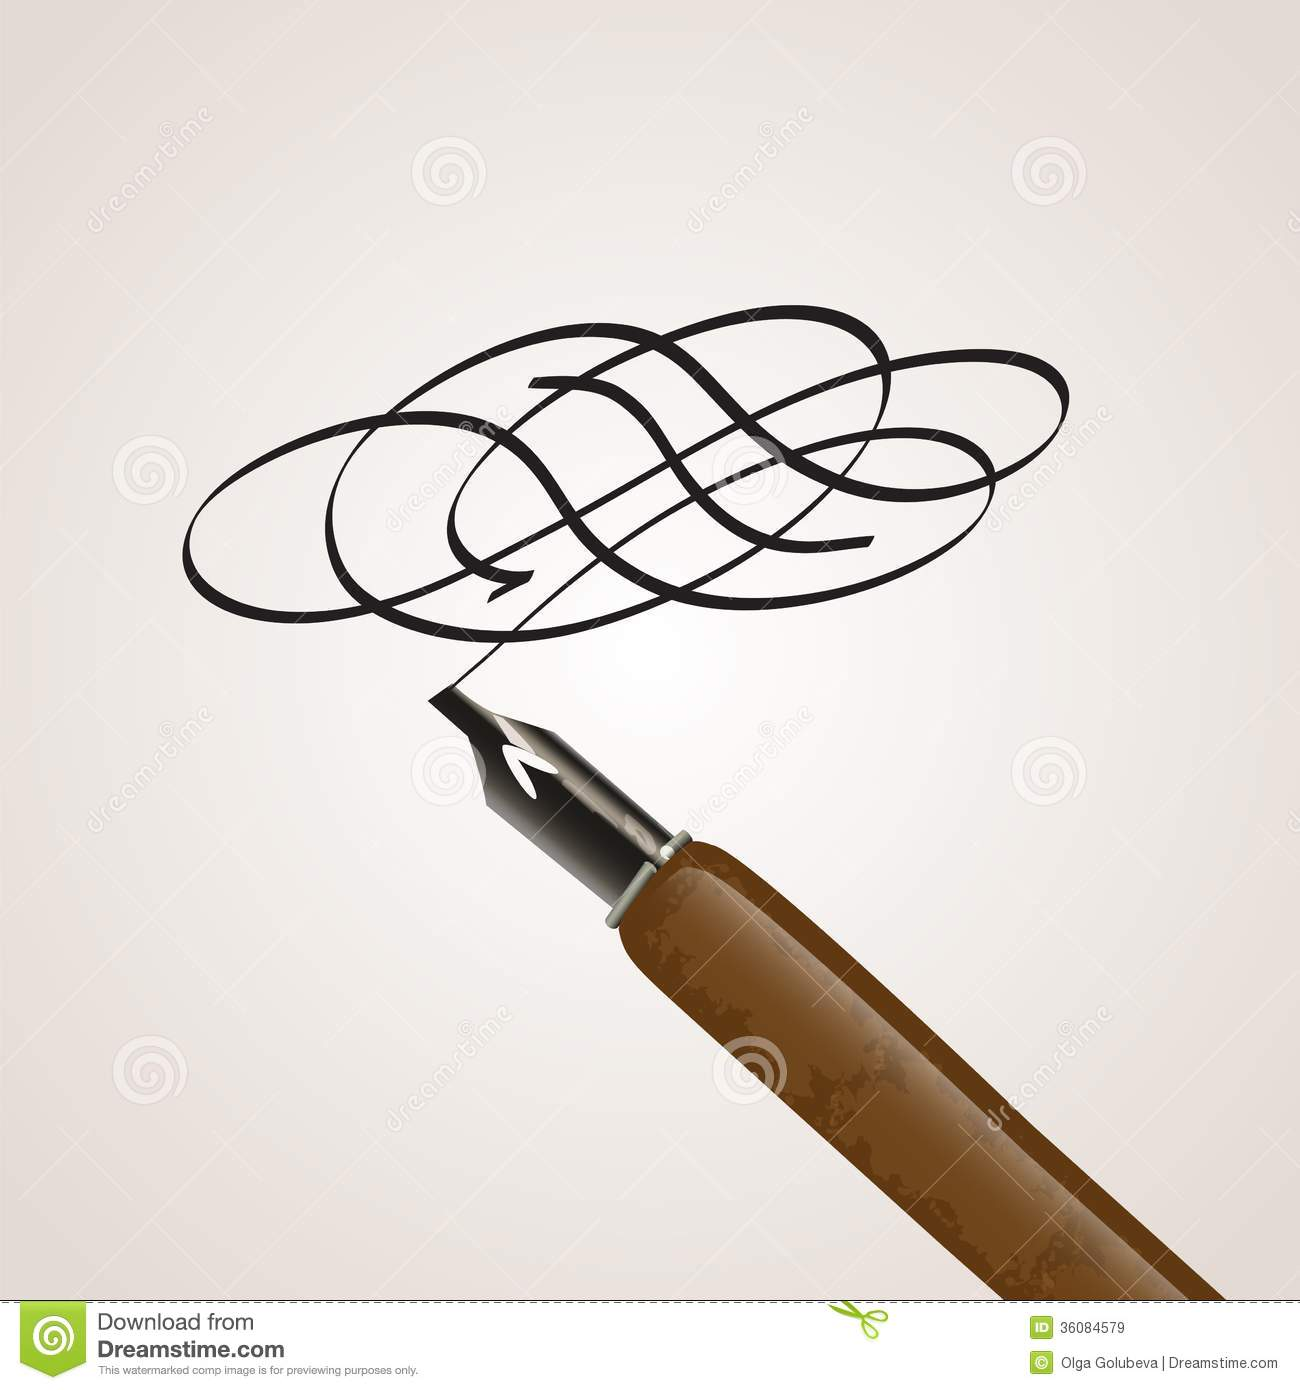 Calligraphy Pen Made Of A Twirl Royalty Free Stock Images